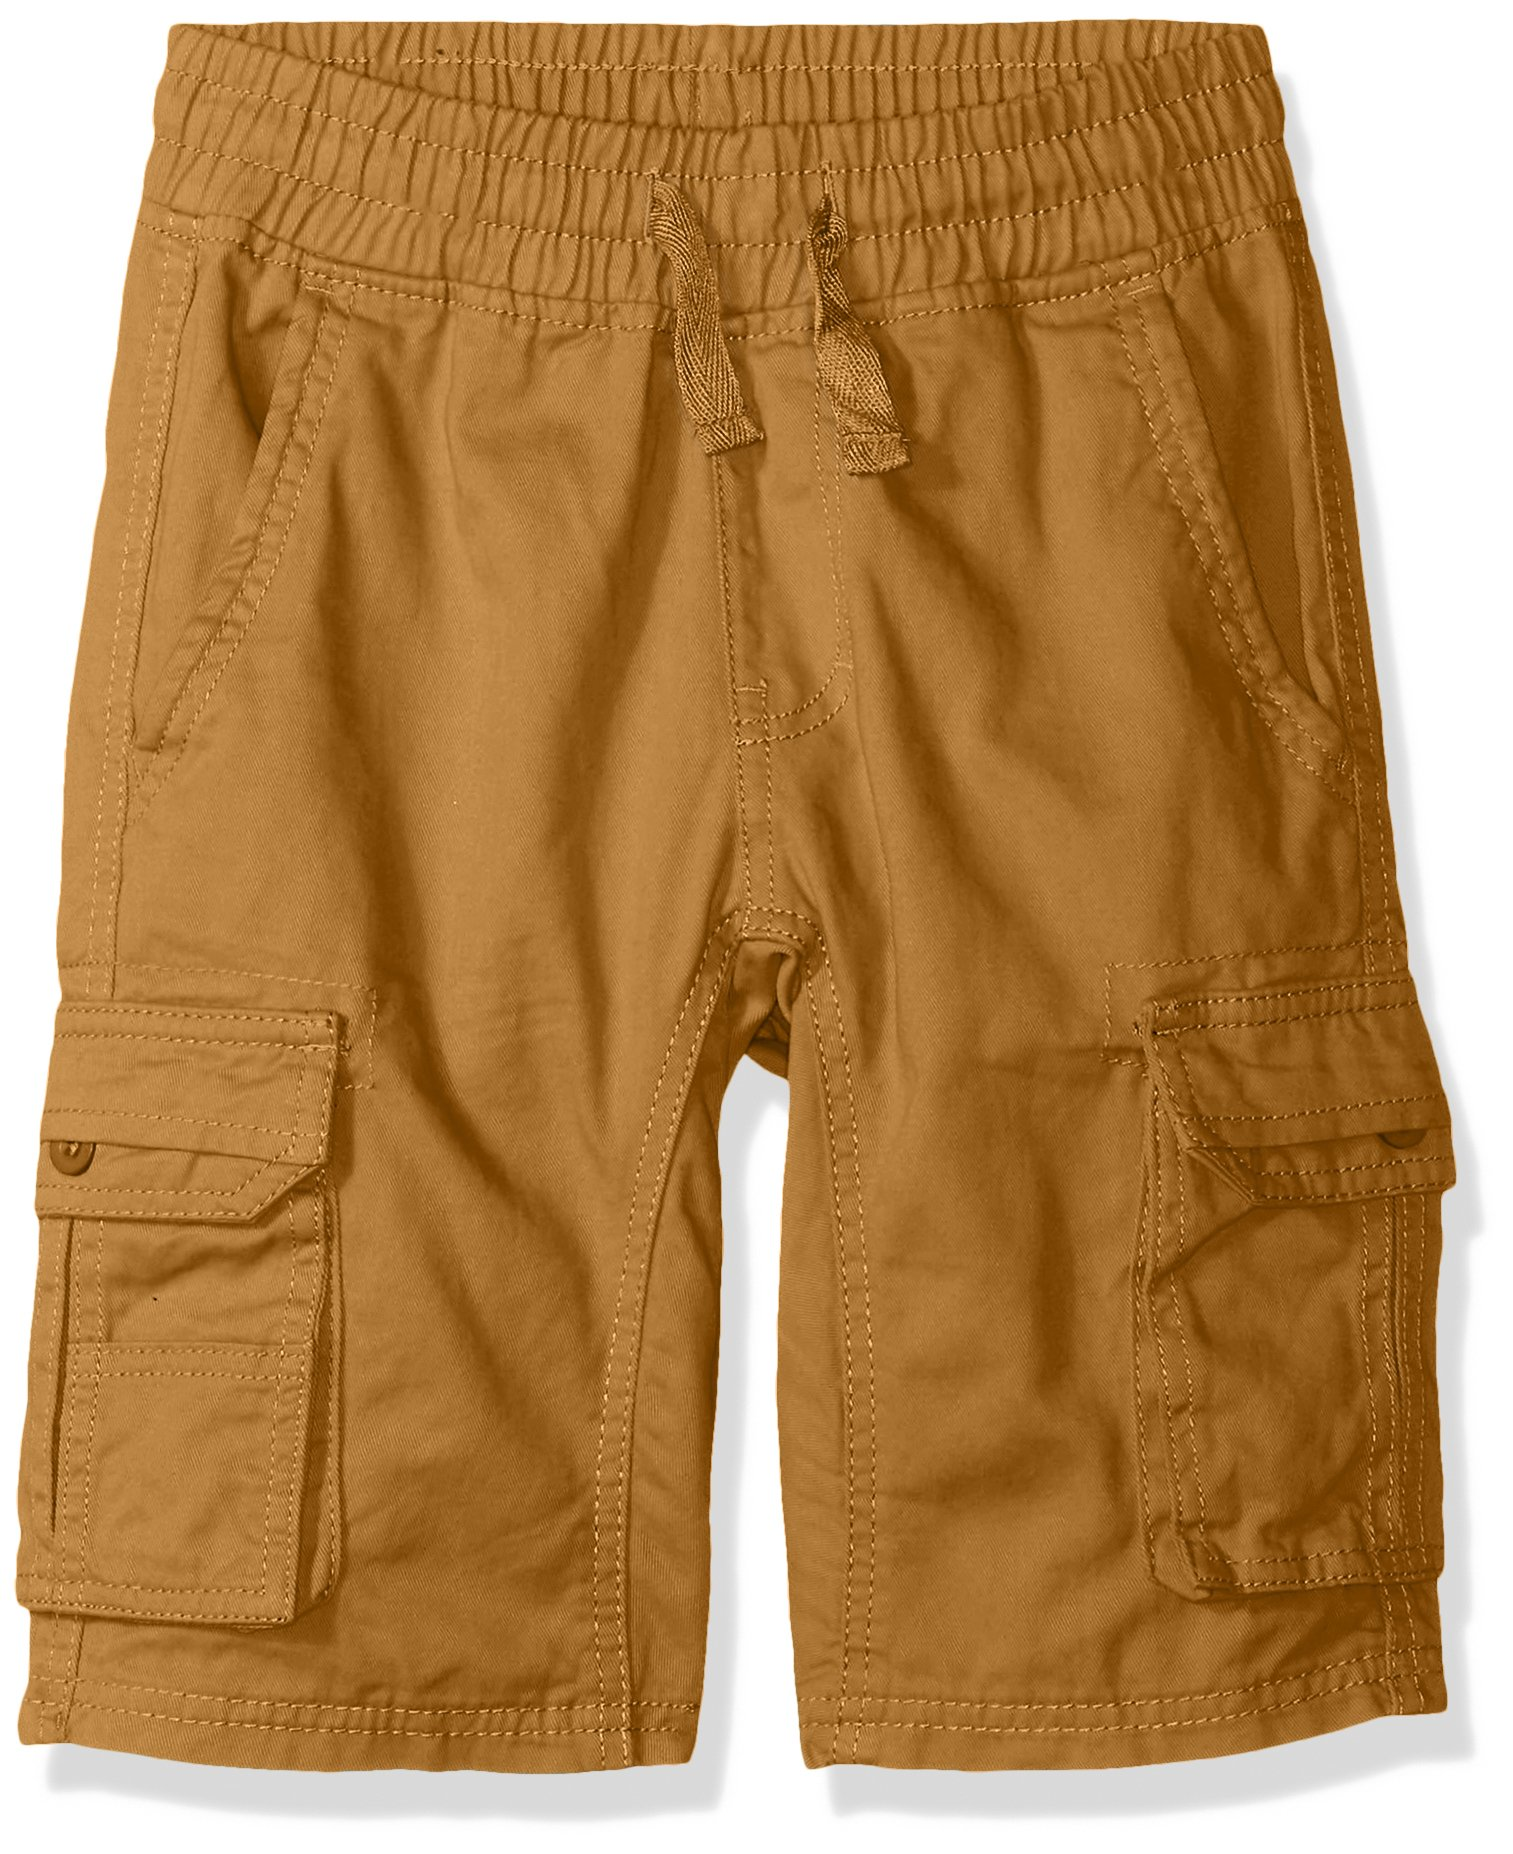 Southpole Boys' Big Twill Cargo Jogger Shorts in Basic Solid Colors, Wheat, Medium